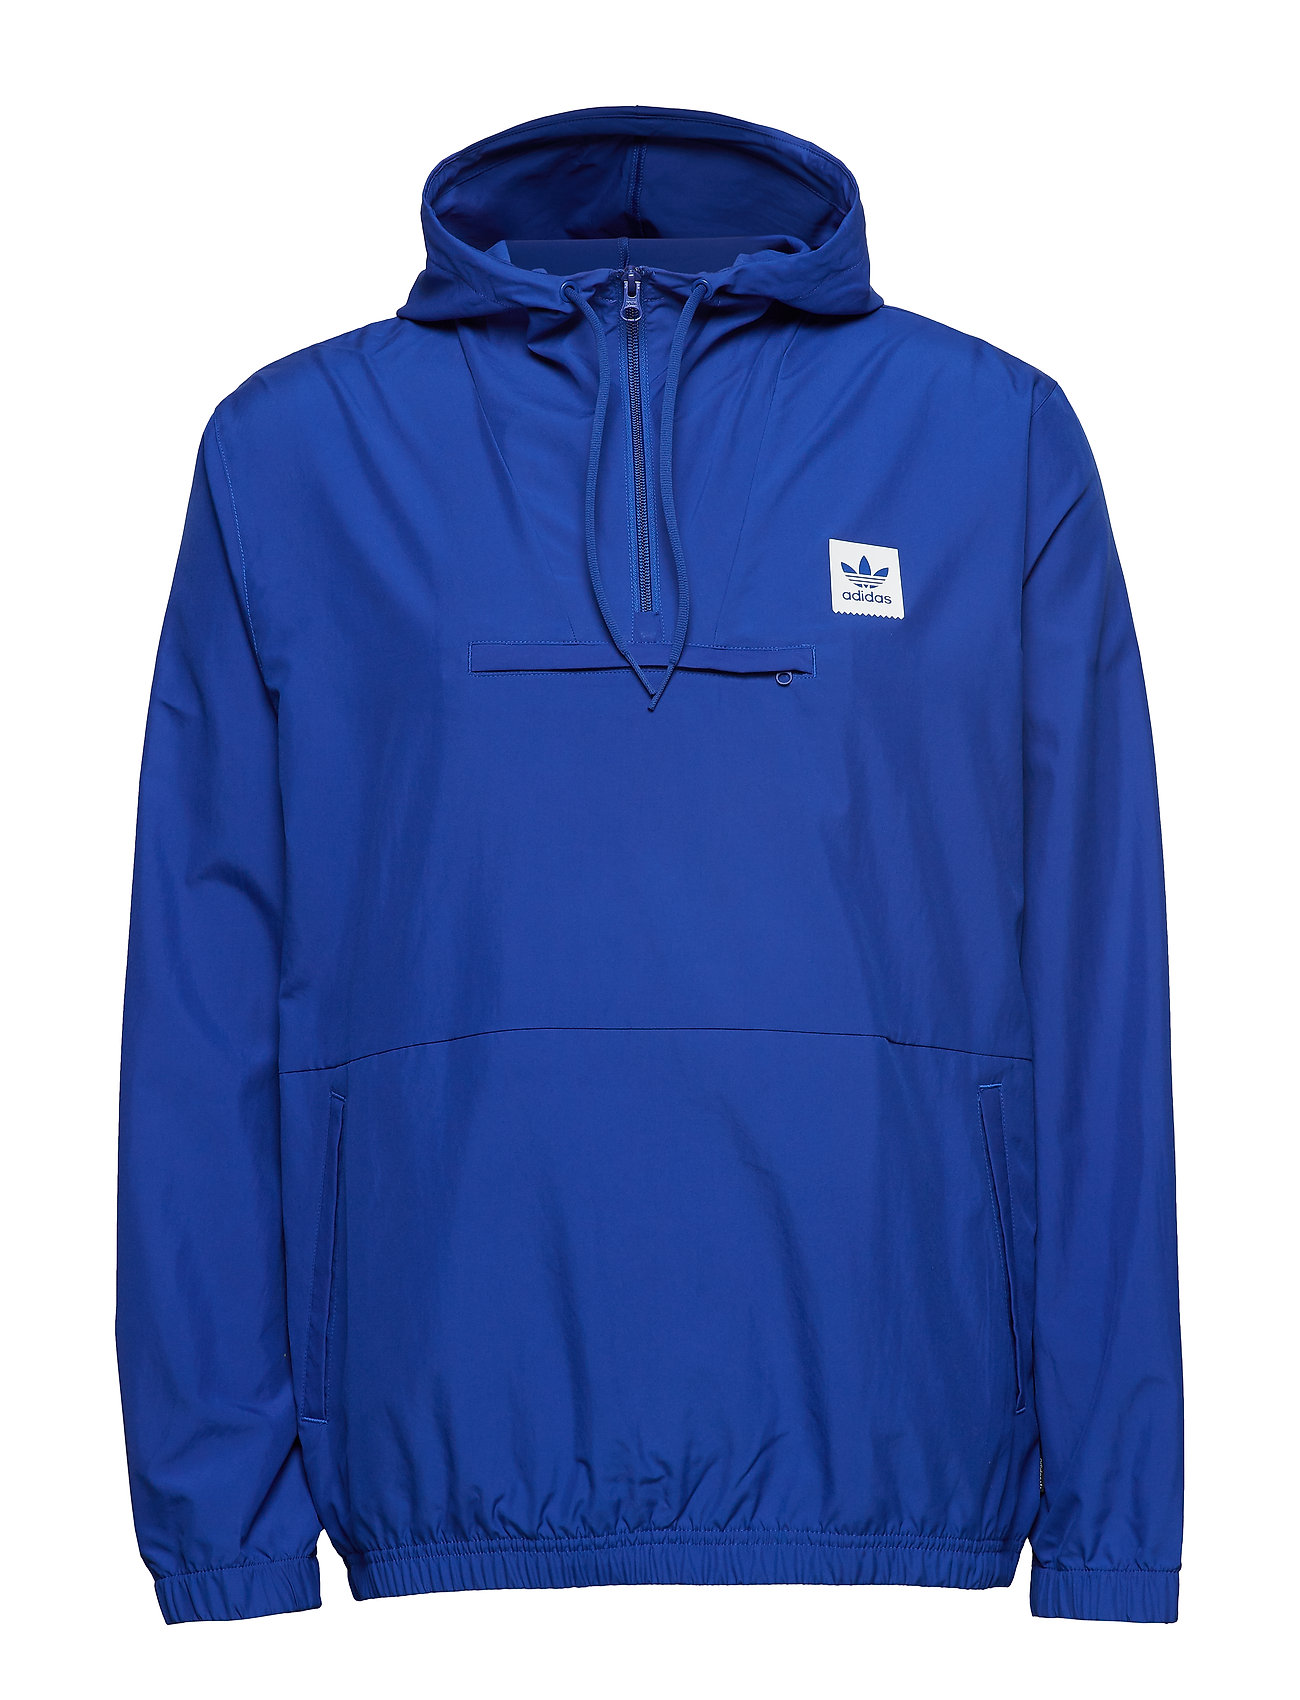 adidas Performance HIPJACKET - CROYAL